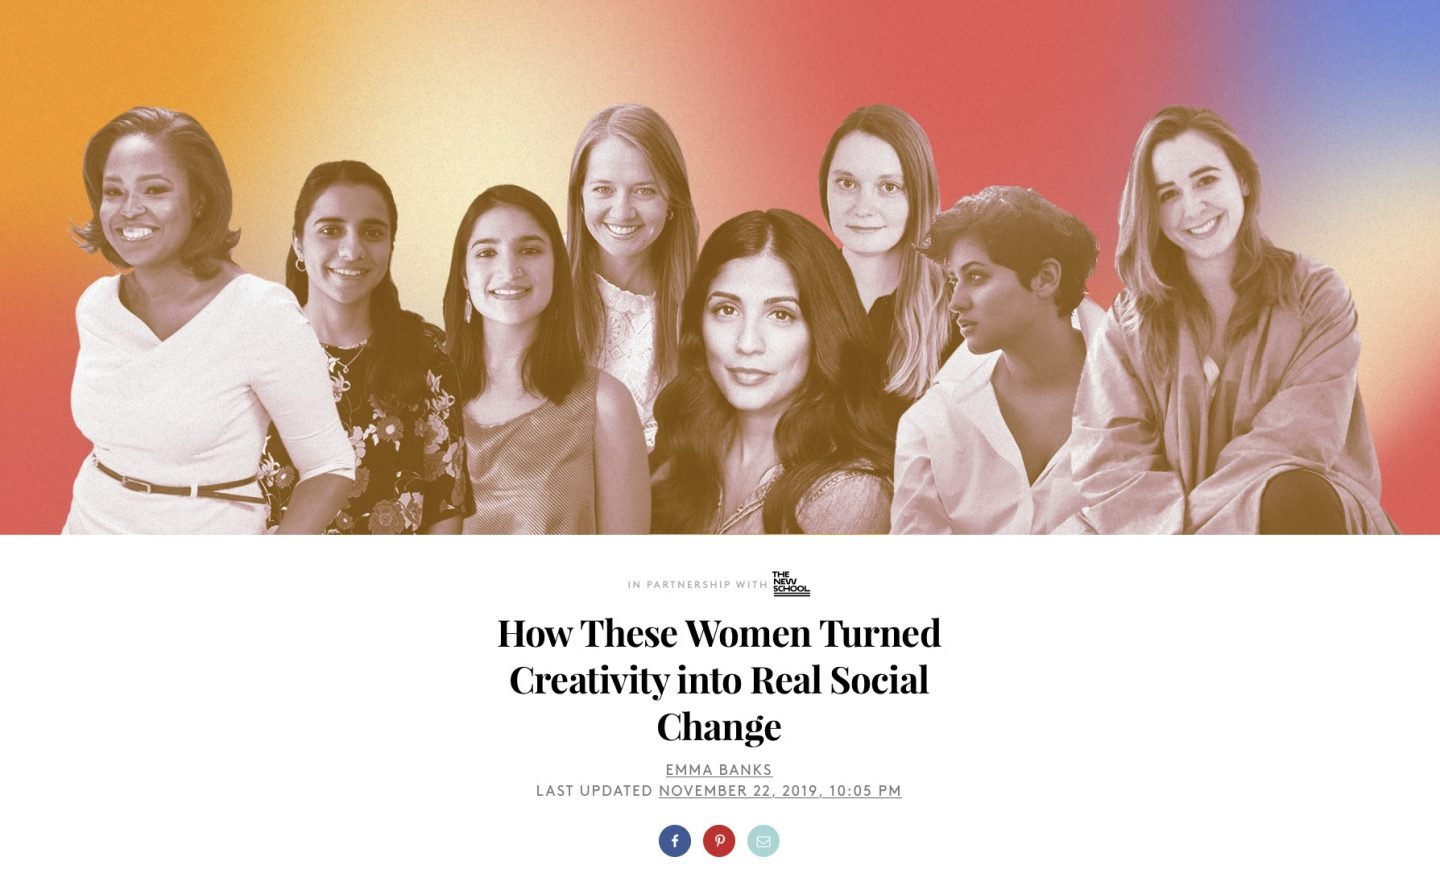 MA Fashion Studies Alumni: 'How These Women Turned Creativity into Real Social Change' by Refinery29